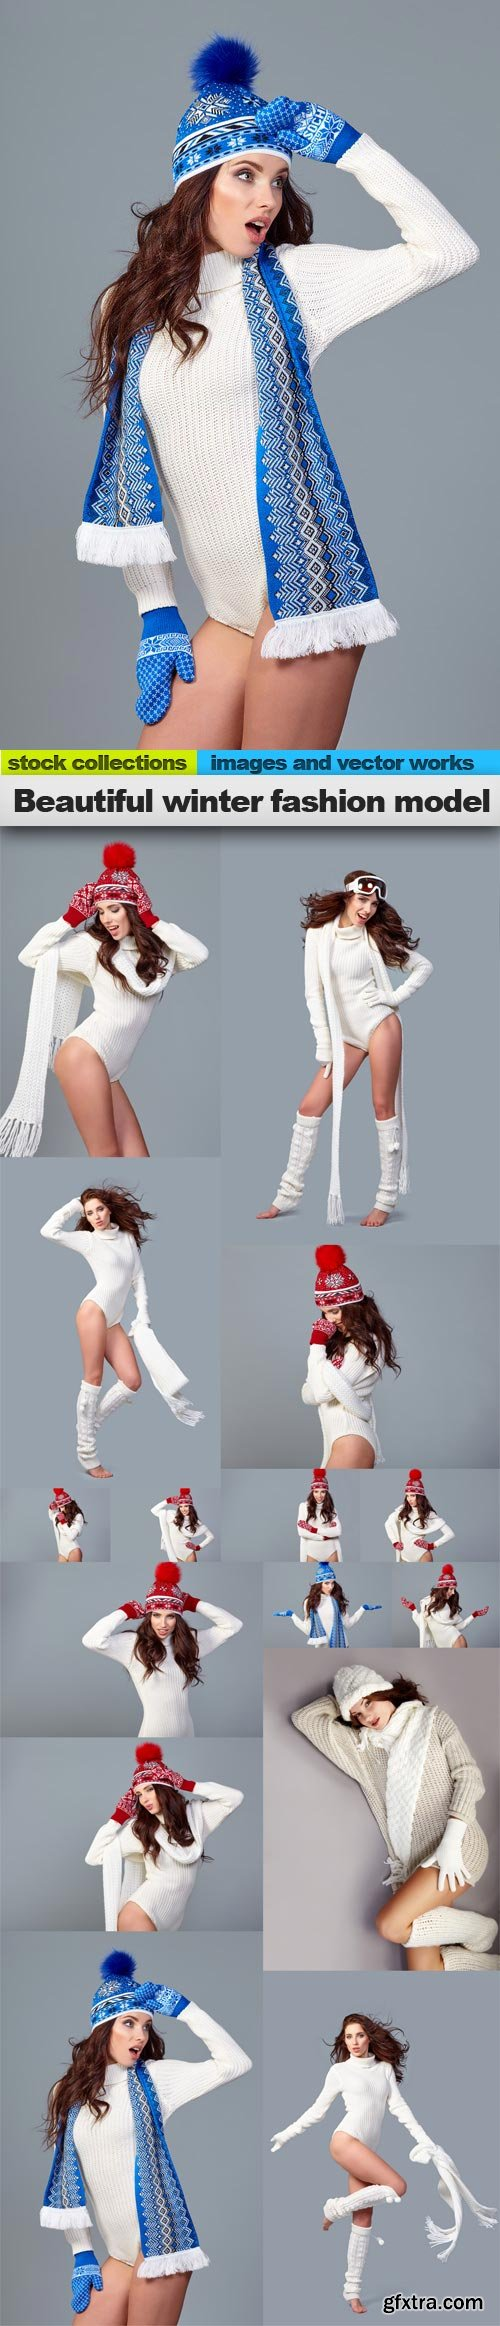 Beautiful winter fashion model, 15 x UHQ JPEG